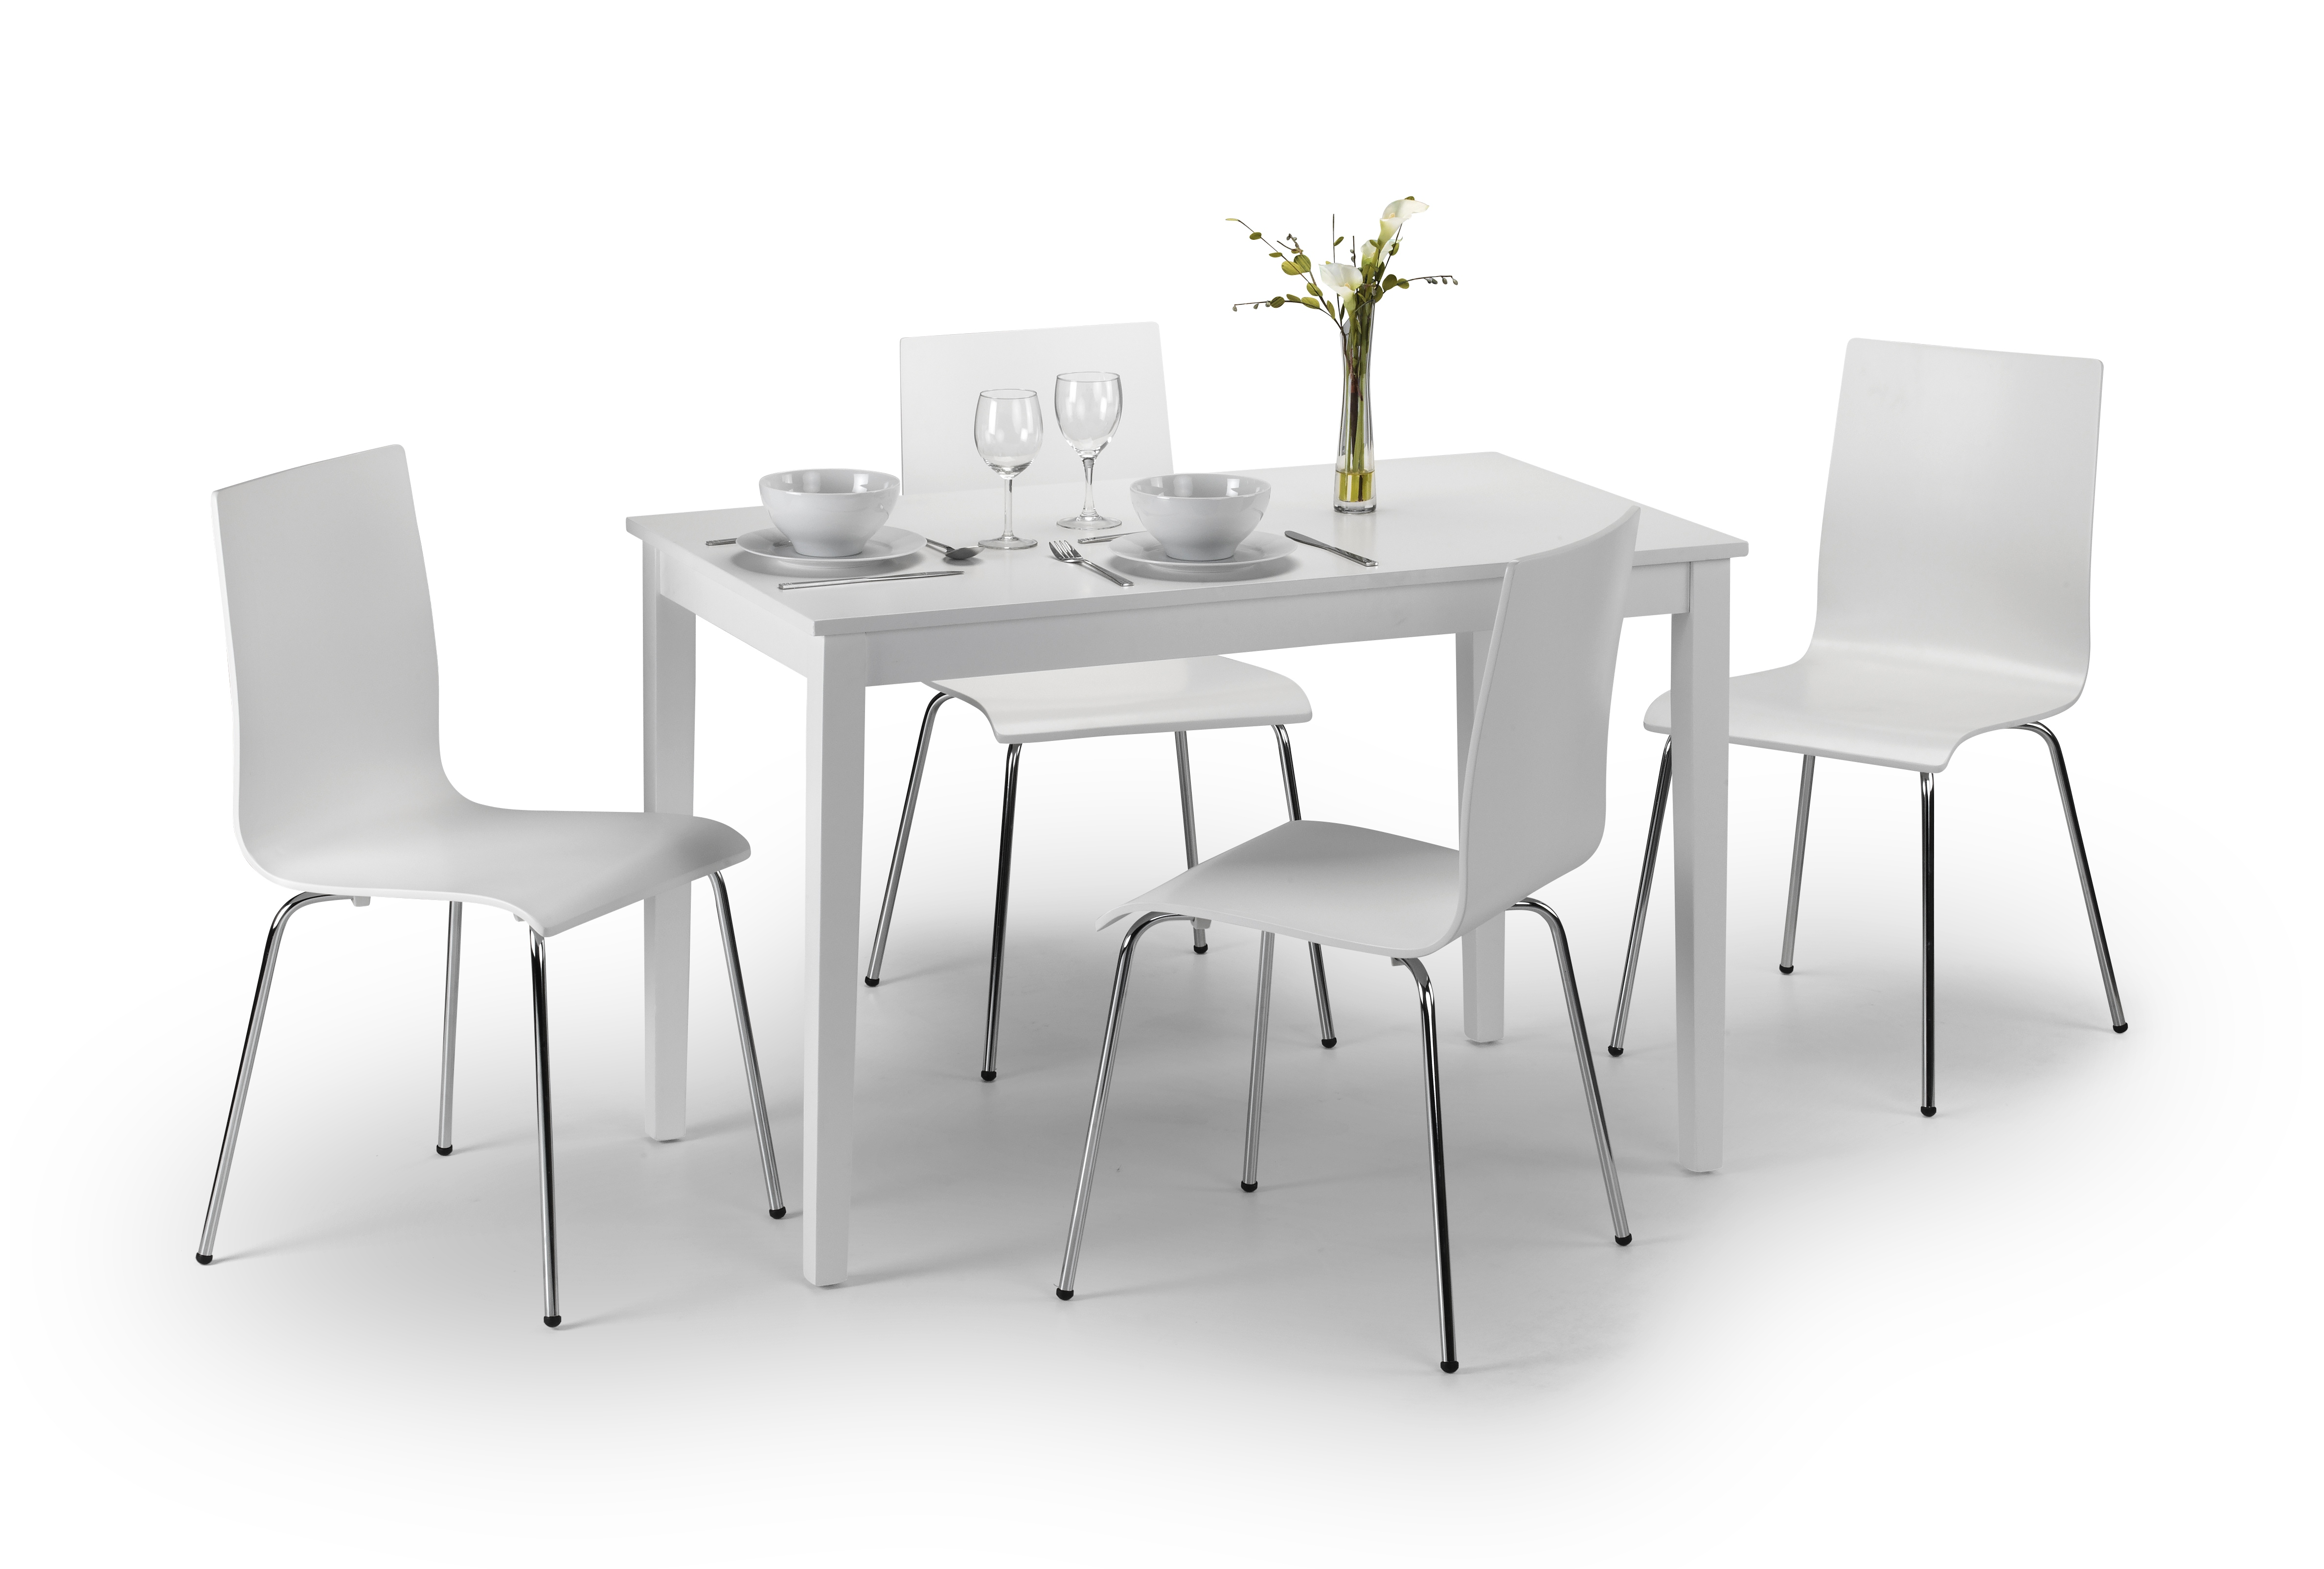 Taku Dining Set with 4 Chairs